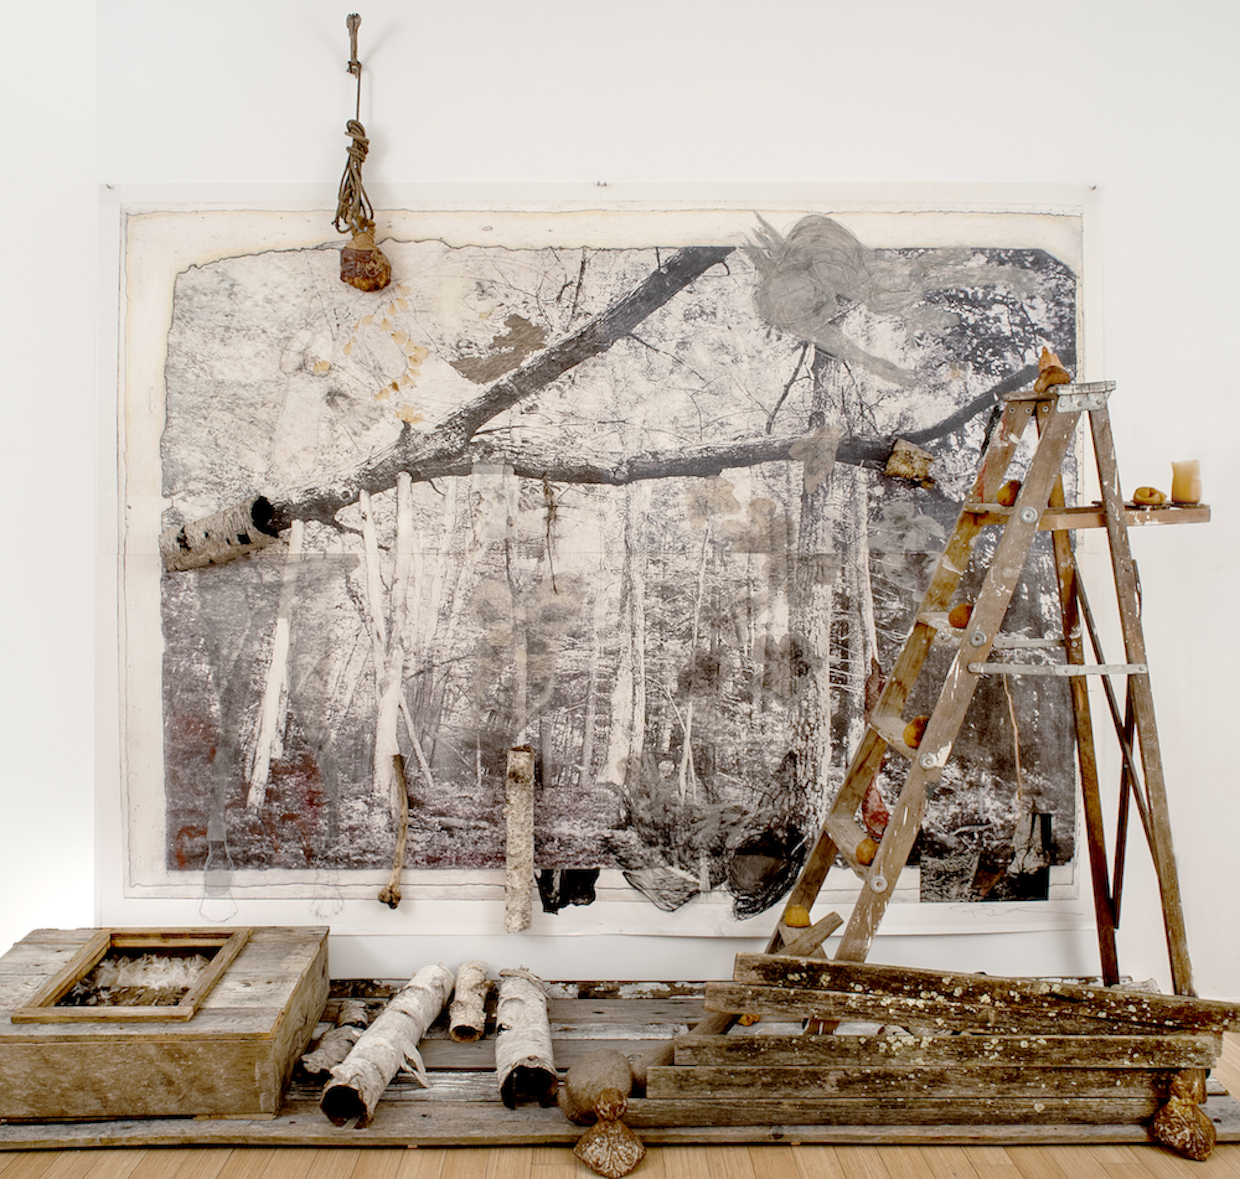 She Fell, He Disintegrated While Black Flowers Rained Down as Dusk Descended , 2018, 14' x 12' x 4', installation with giclee enlargement of photogravure from a photograph of an outdoor Memorial to my deceased husband, collaged with dried roses, snakeskin, gravure prints, Tarleton, drawing, chalk, silverpoint, bone, wood, birch bark, shag bark, aged floor planks, vintage wood ladder, latex cups, dried tangerines, cast iron, rope, urethane foam, railroad spike, Book of the Dead; Wonderland, feathers, seed pods.